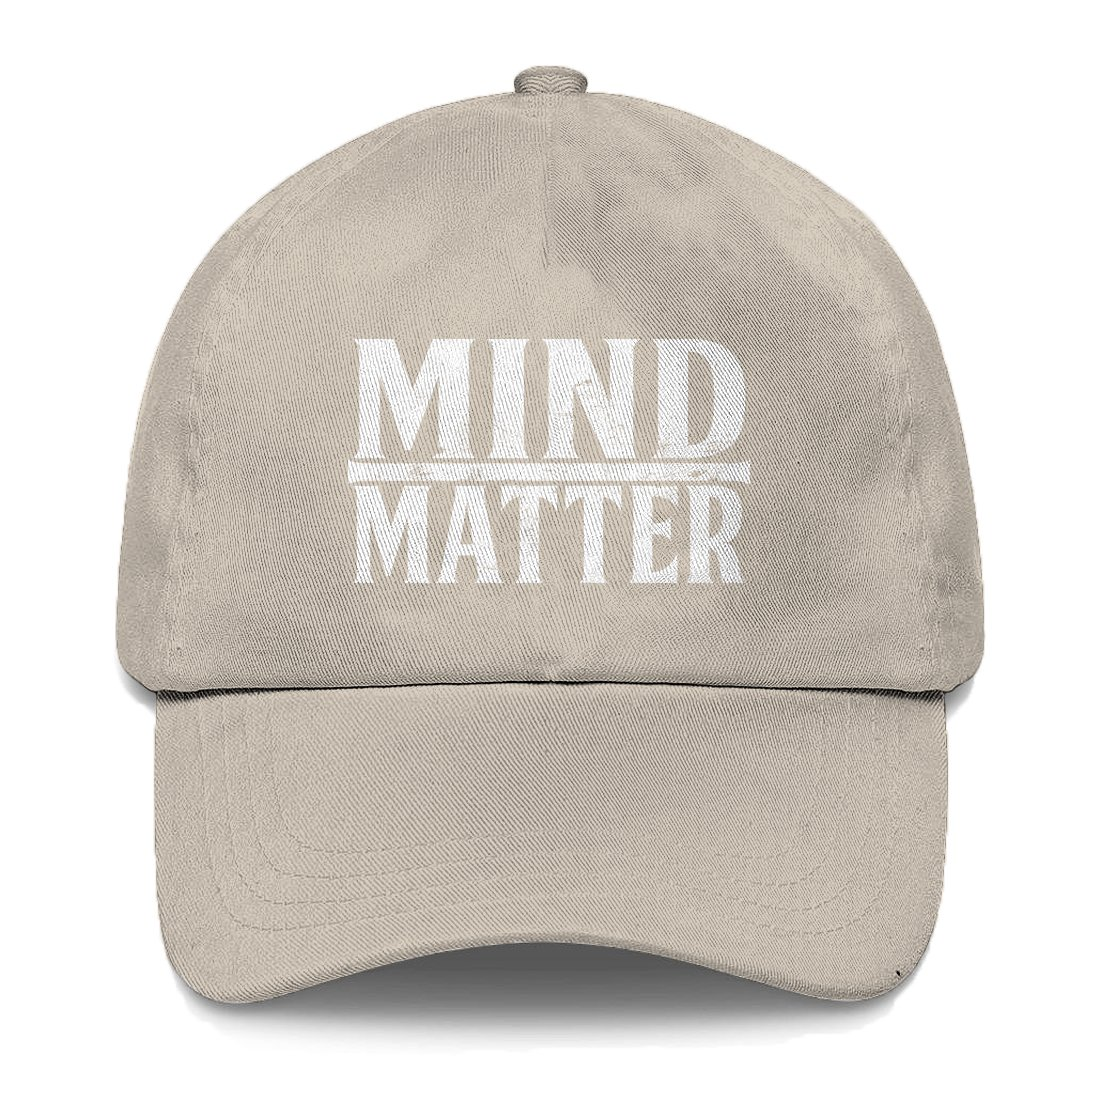 Tcombo Mind Over Matter Dad Hat (Stone)